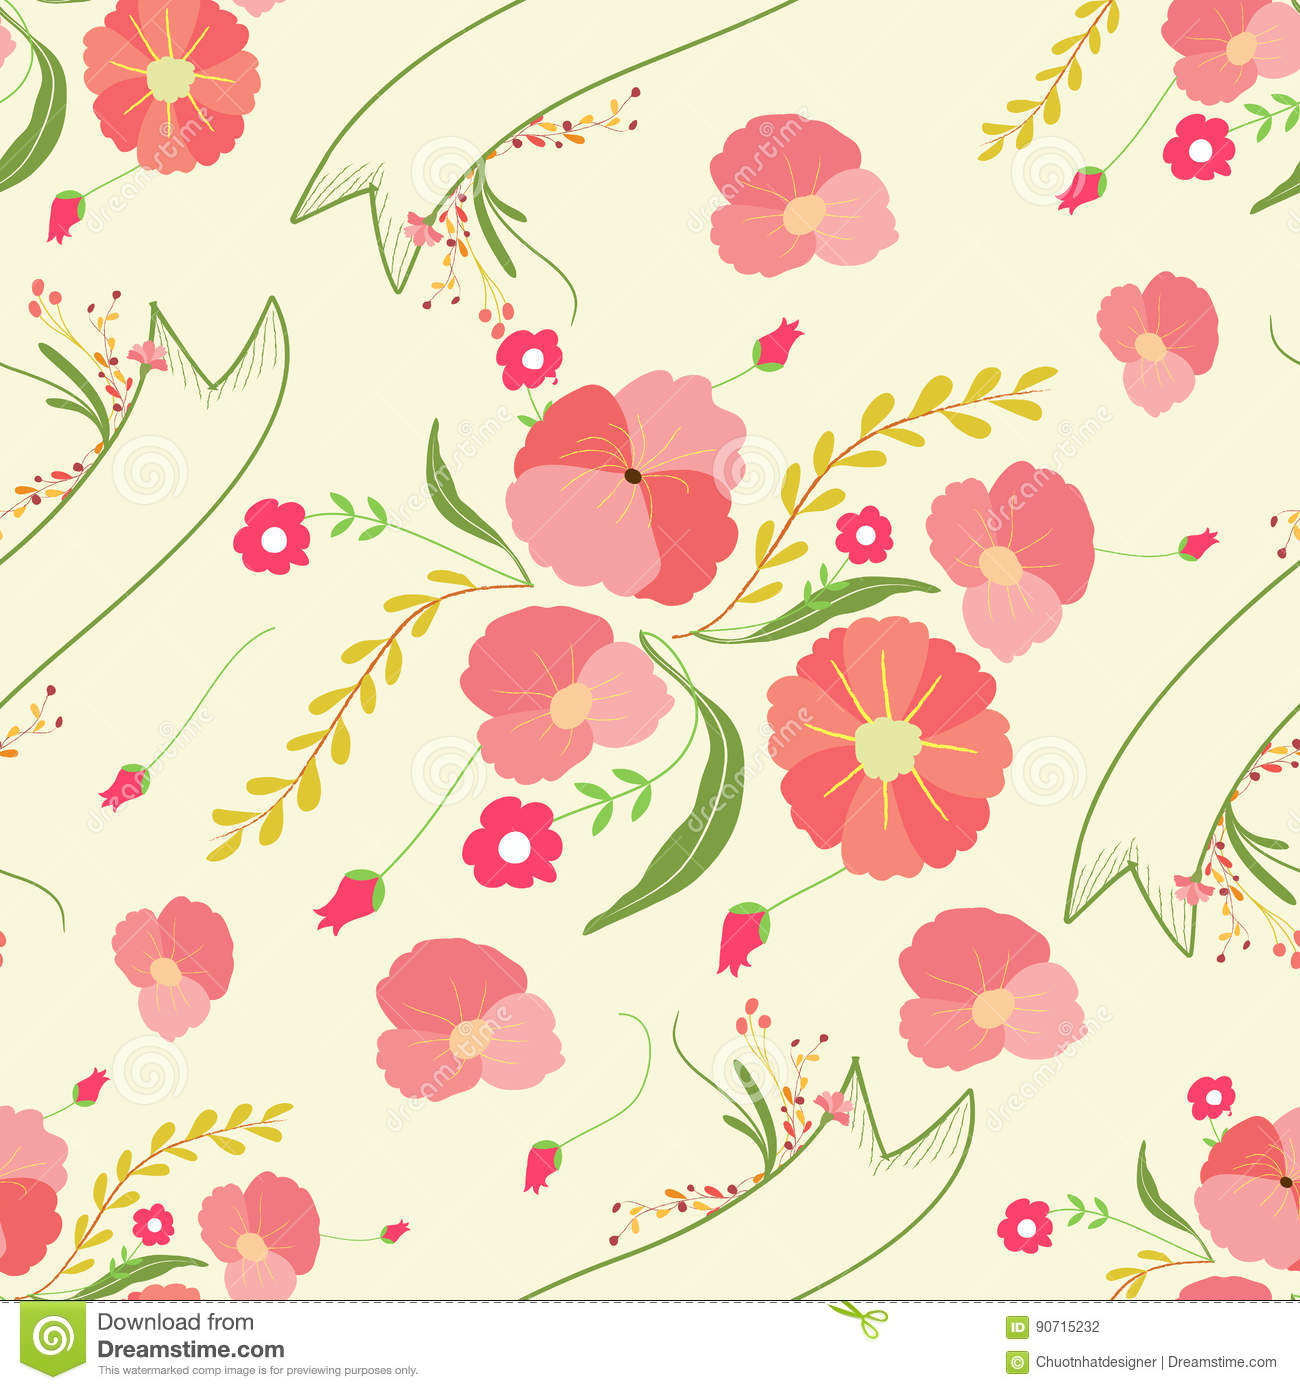 Spring flowers backgrounds seamless floral pattern stock vector spring flowers backgrounds seamless floral pattern mightylinksfo